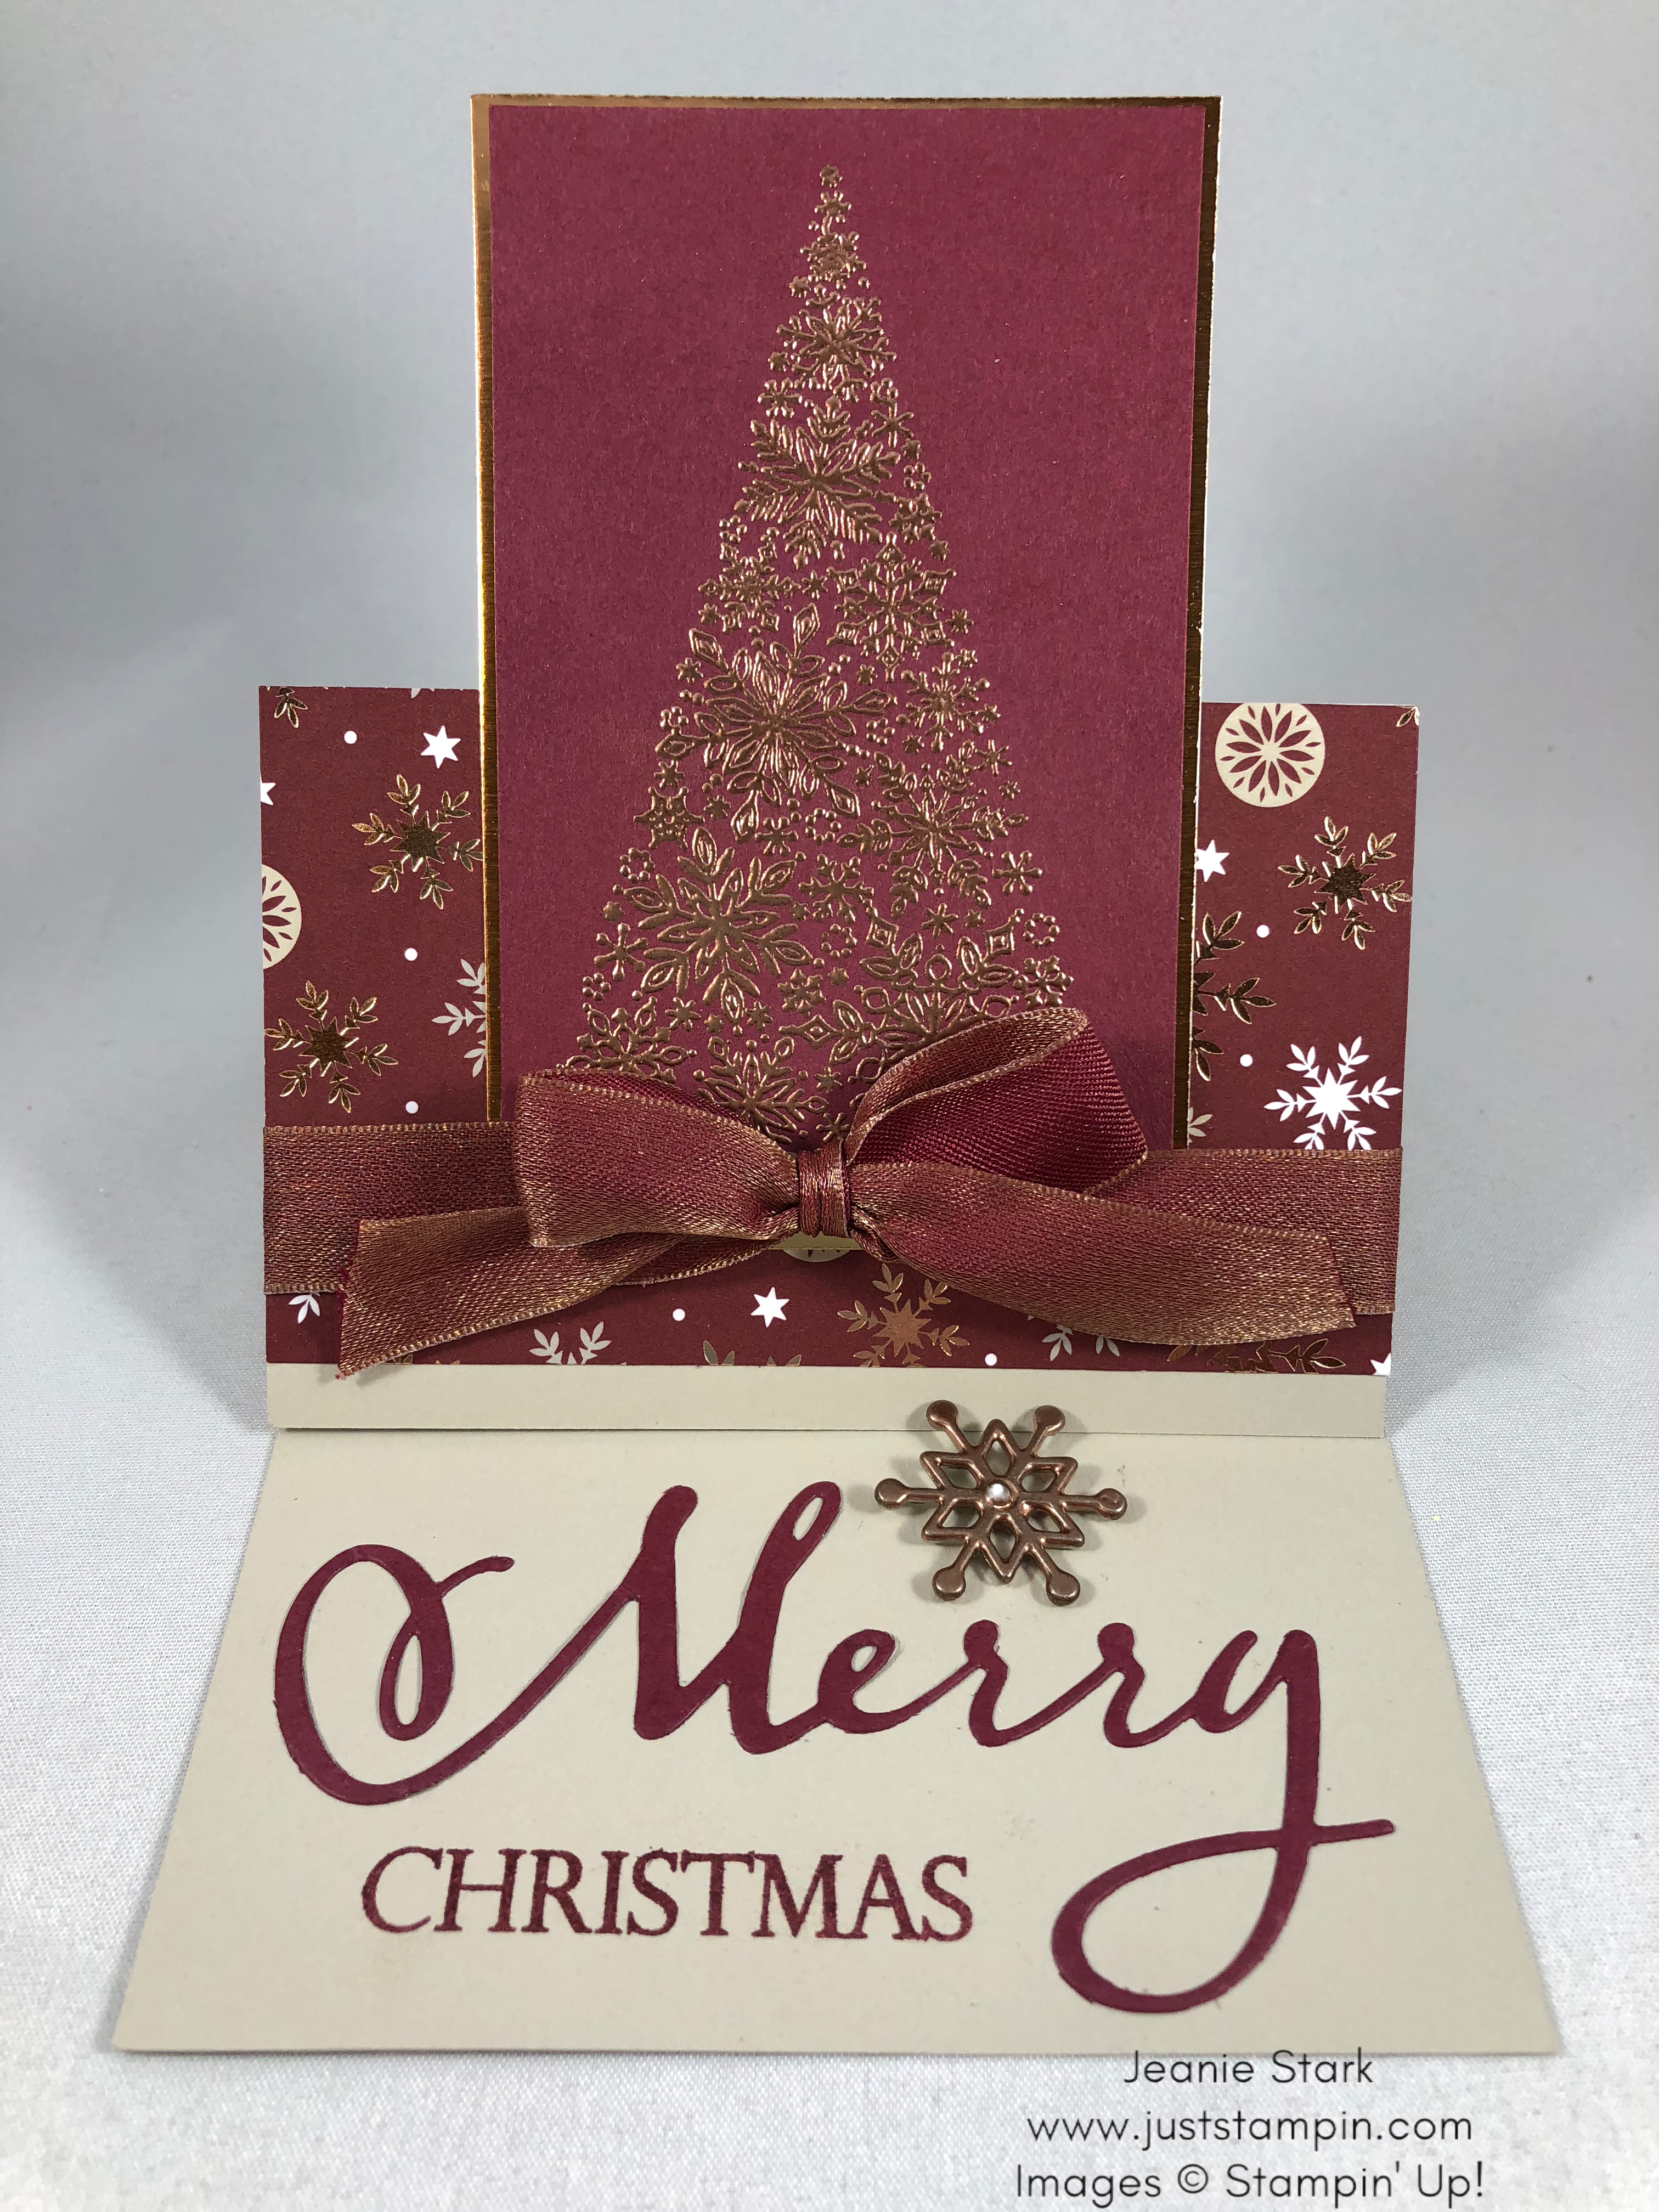 Stampin Up Joyous Noel, Merry Christmas to All, and Snow is Glistening Fun Fold heat embossed Christmas card idea - Jeanie Stark StampinUp